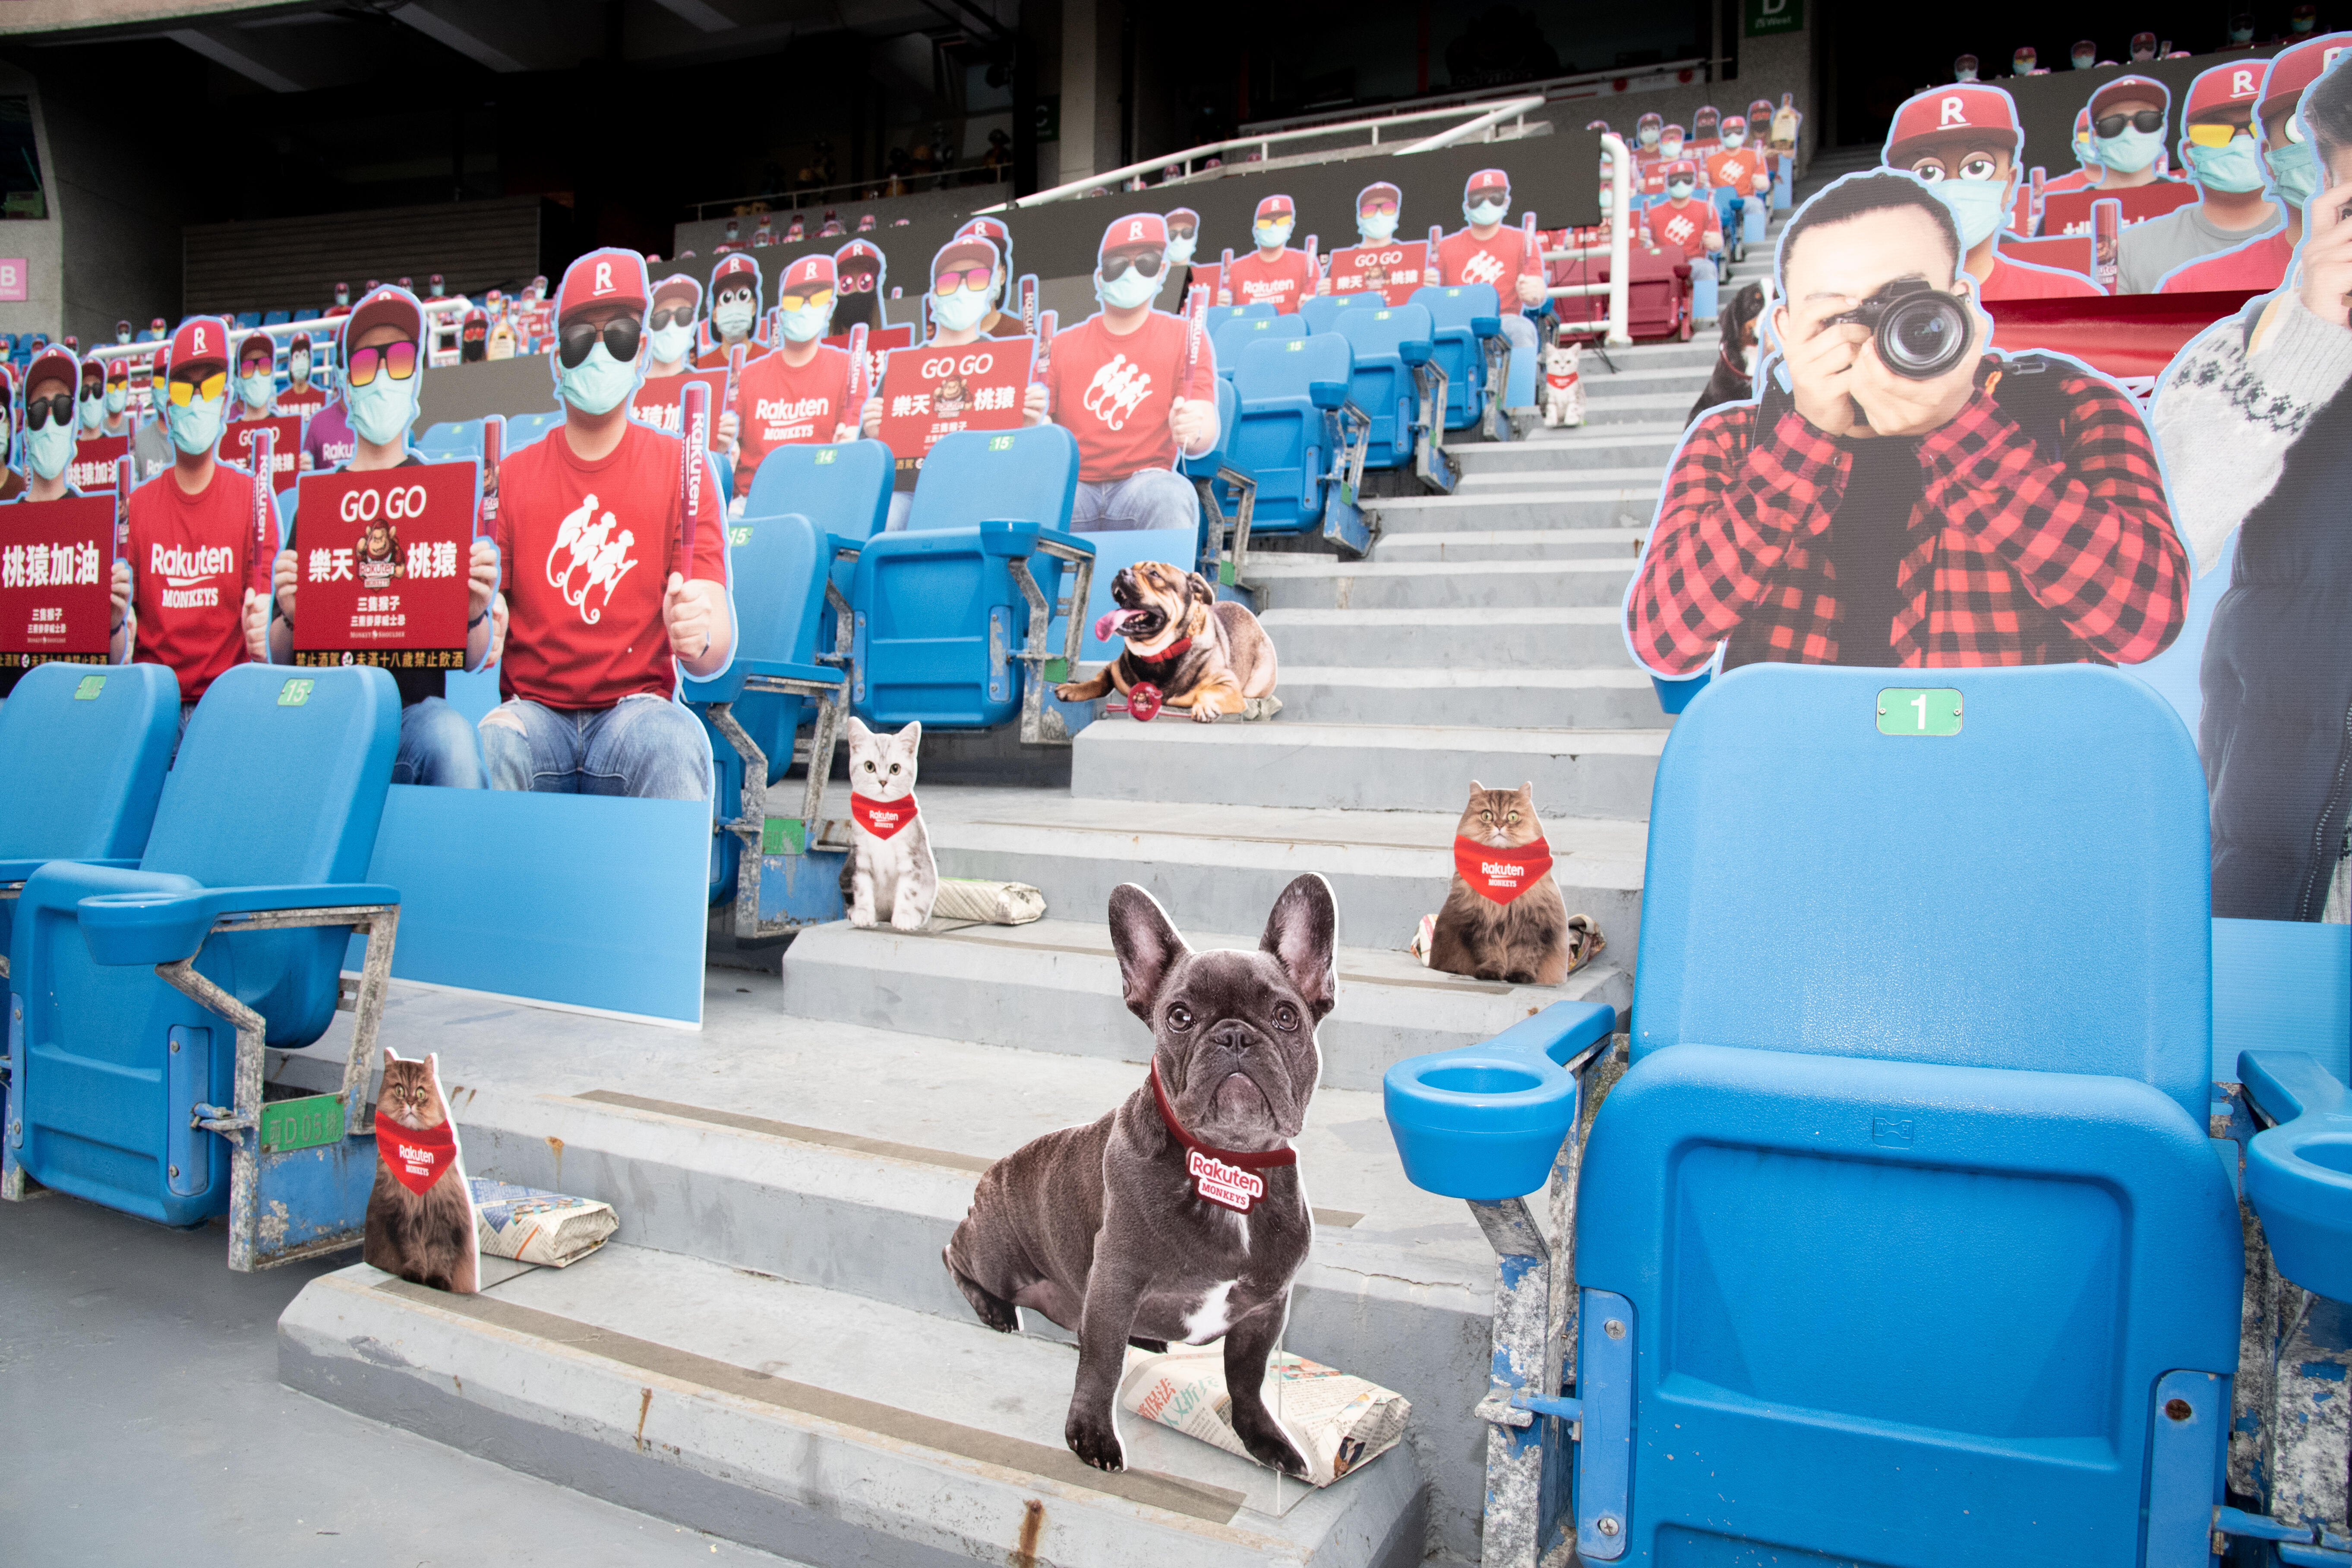 Fans, photographers and pets in the stands in Taiwan.